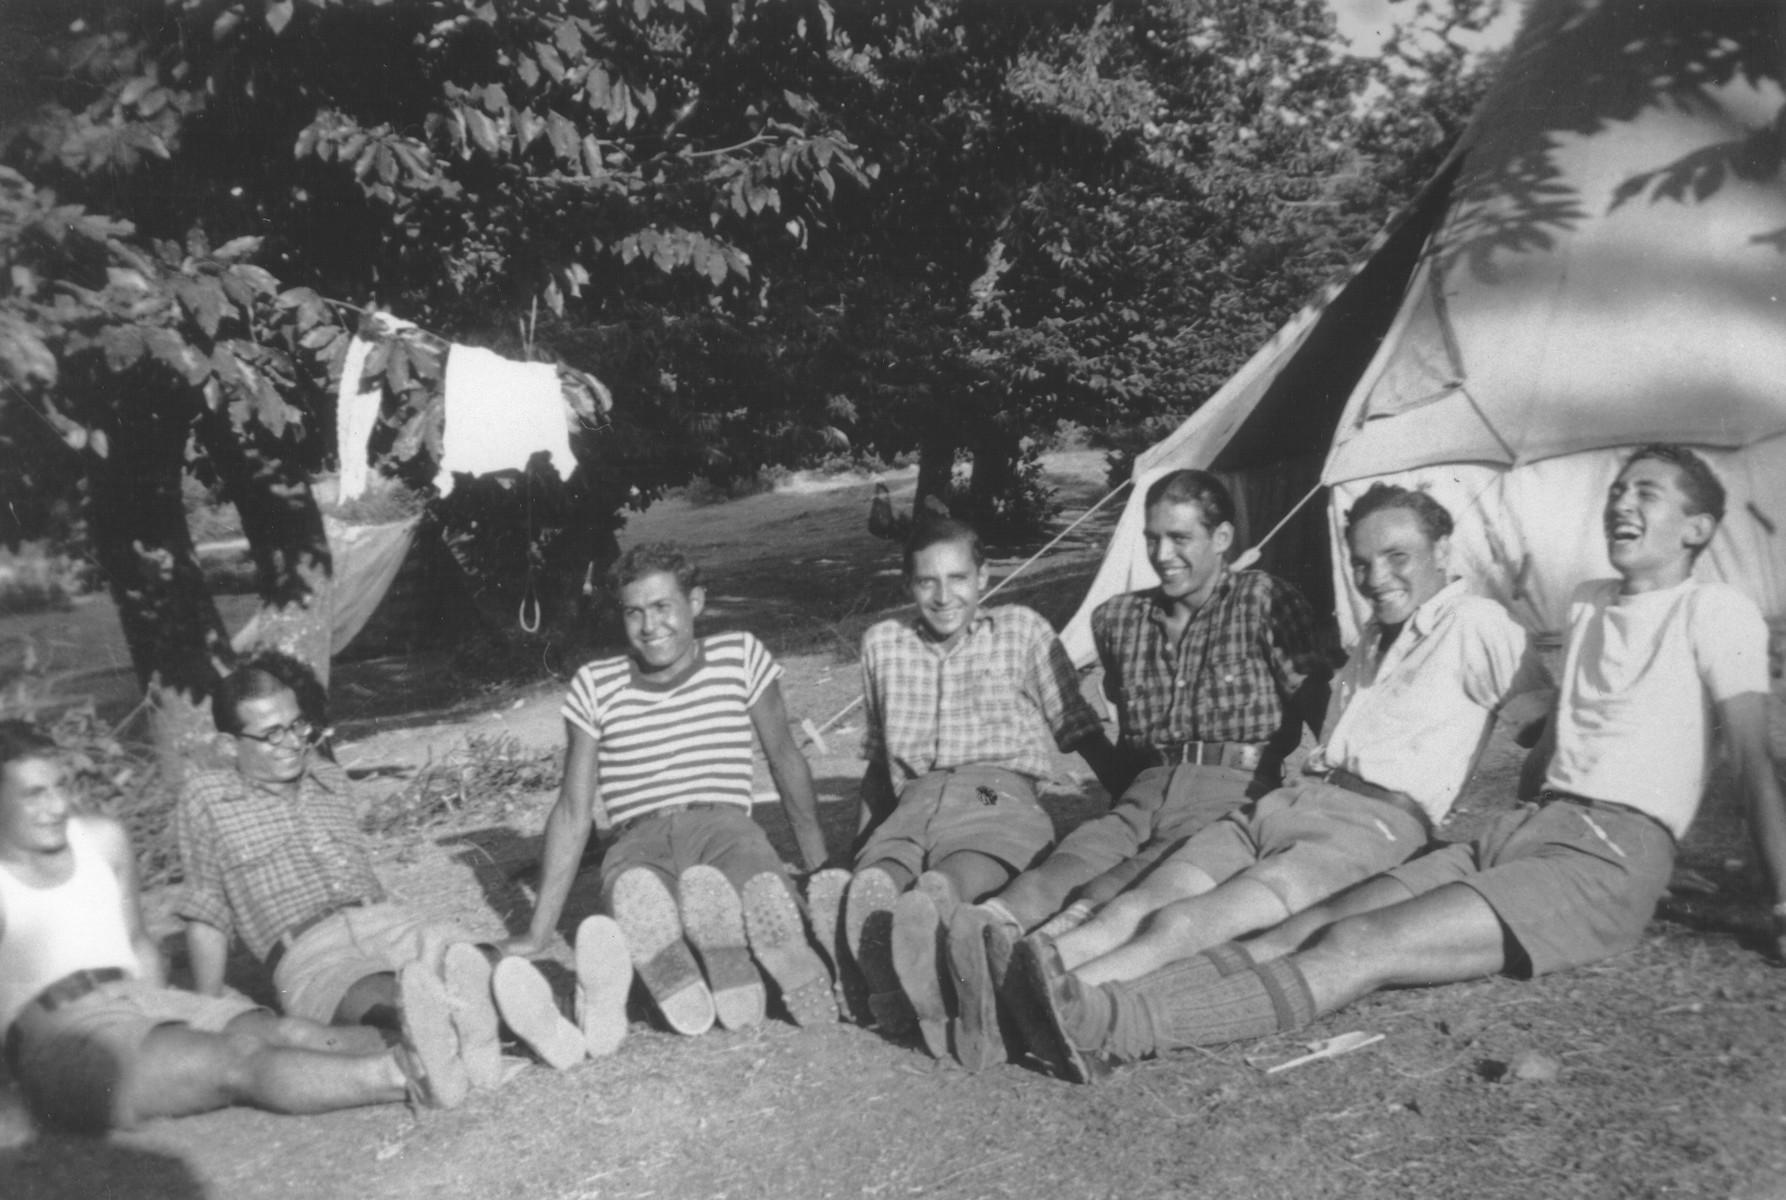 Group portrait of members of the Betar Zionist youth group on a camping trip.  Among those pictured is Jaco Beraha.